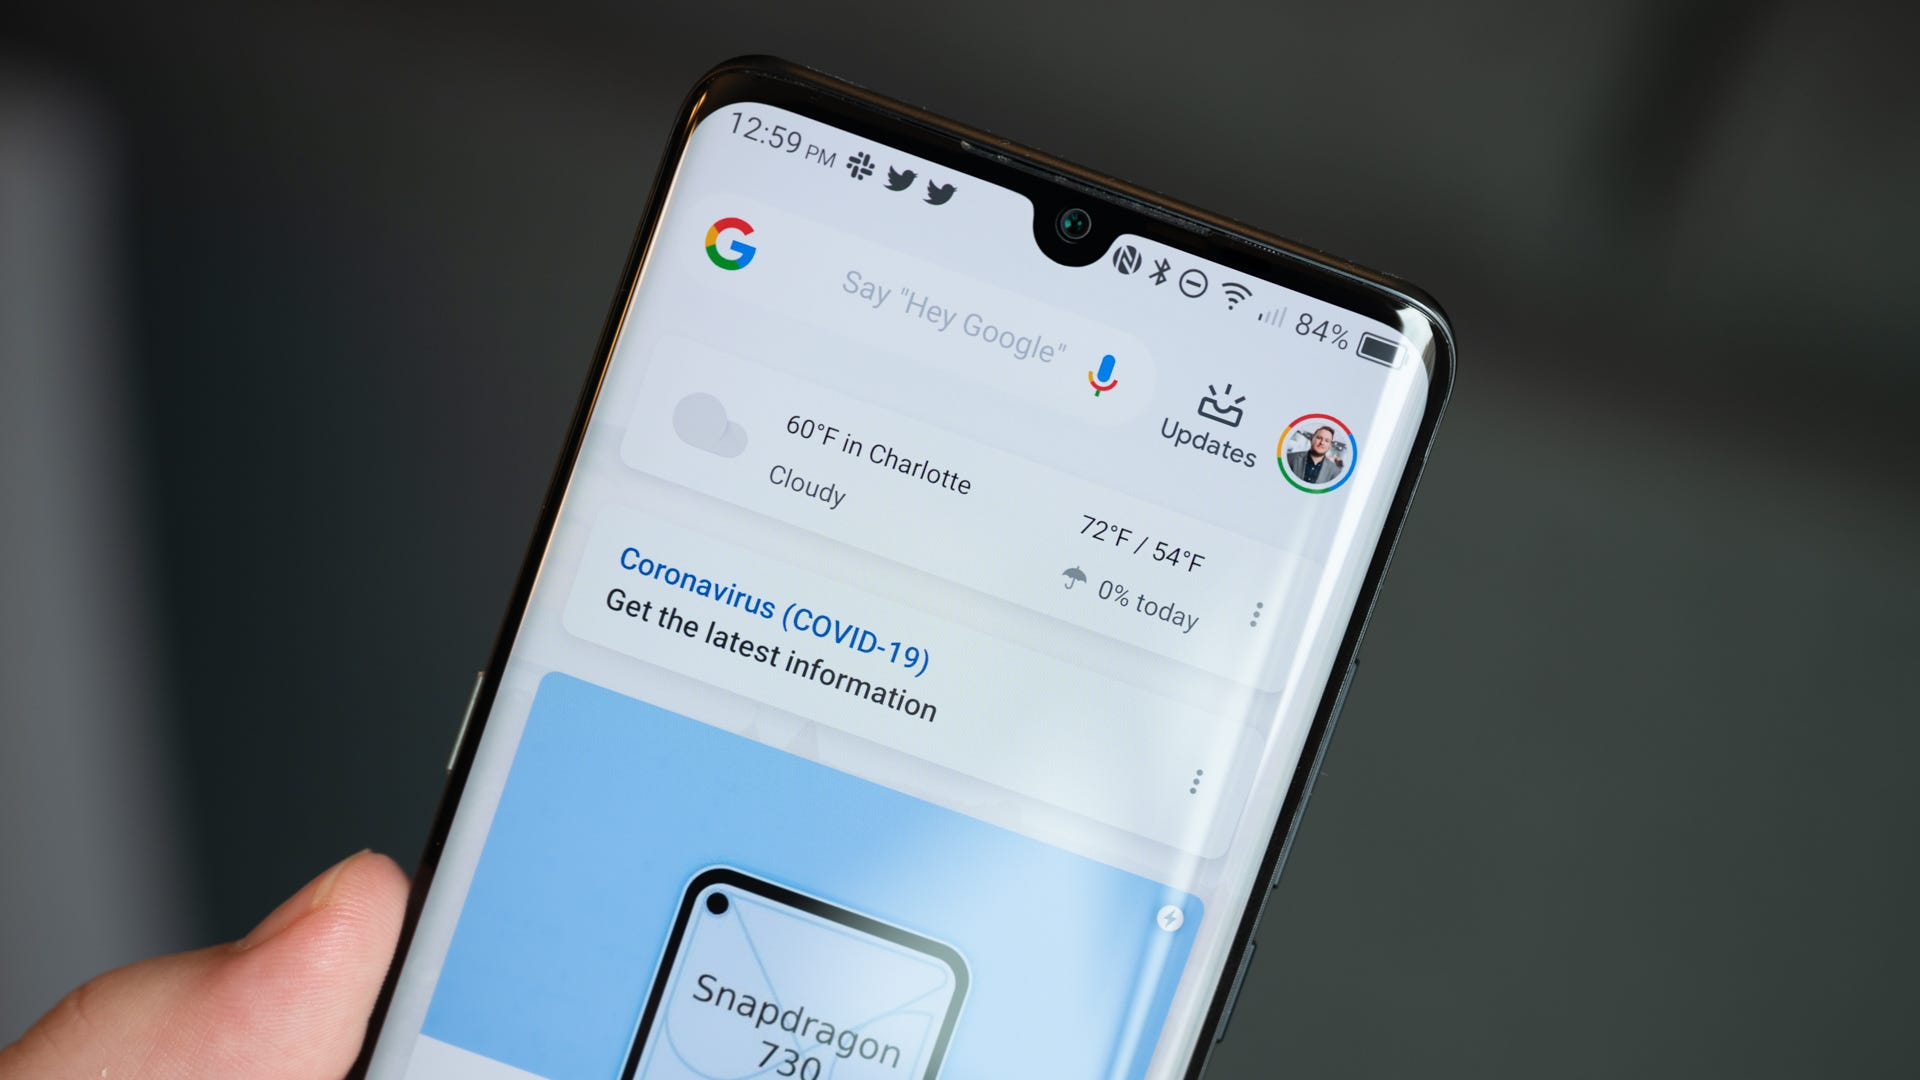 TCL 10 Pro Selfie Camera and Curved Display